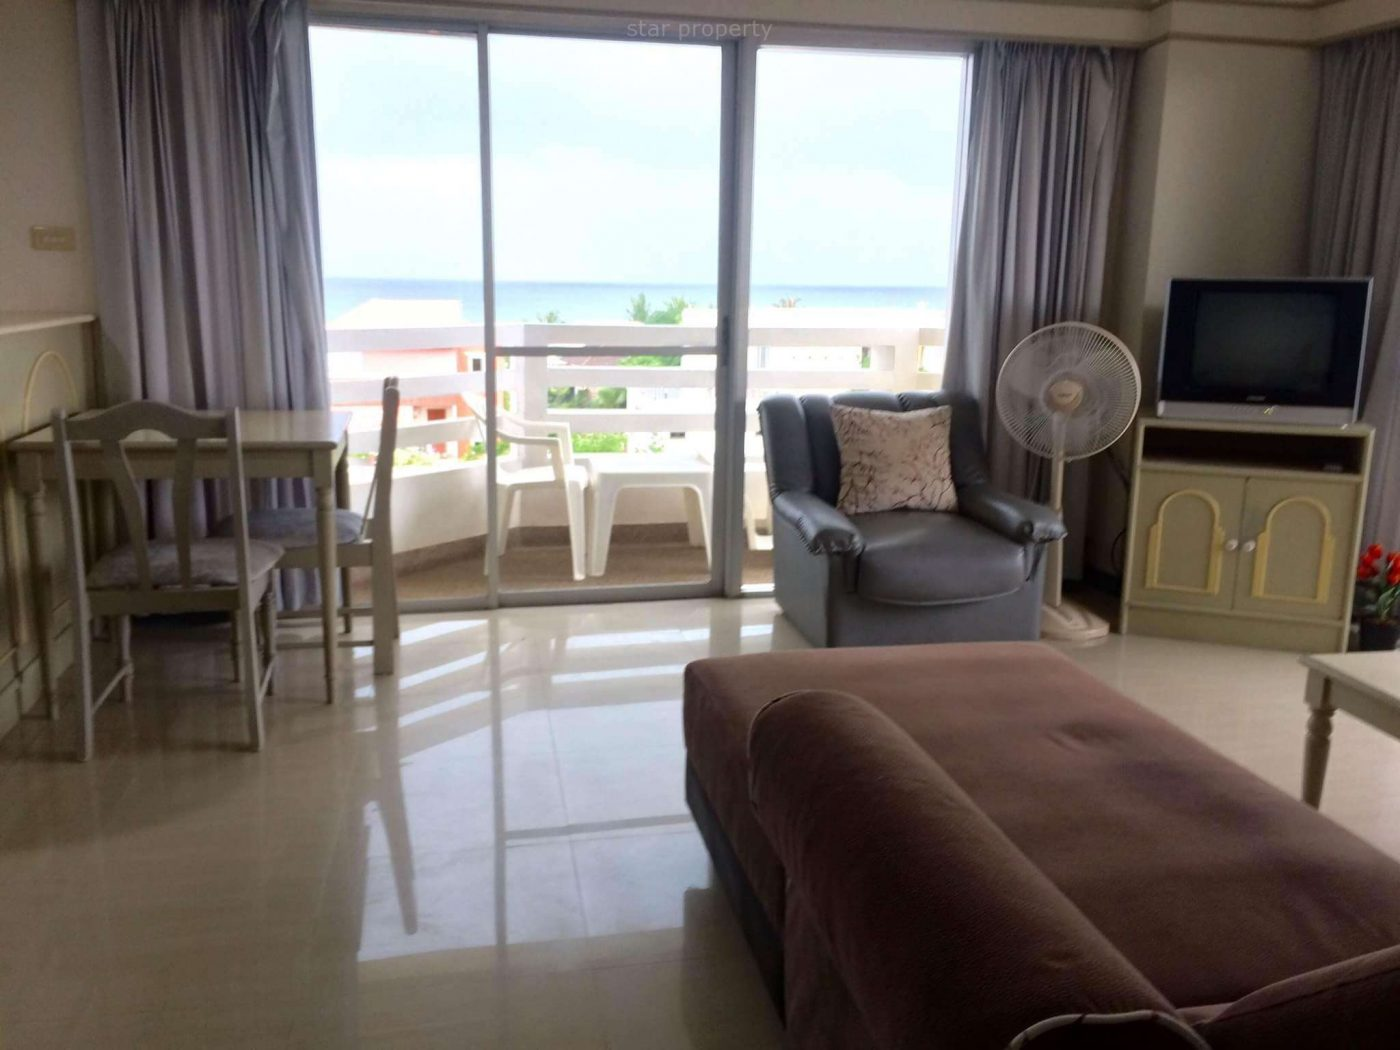 Balcony Ocean View Condo for rent at Condochain